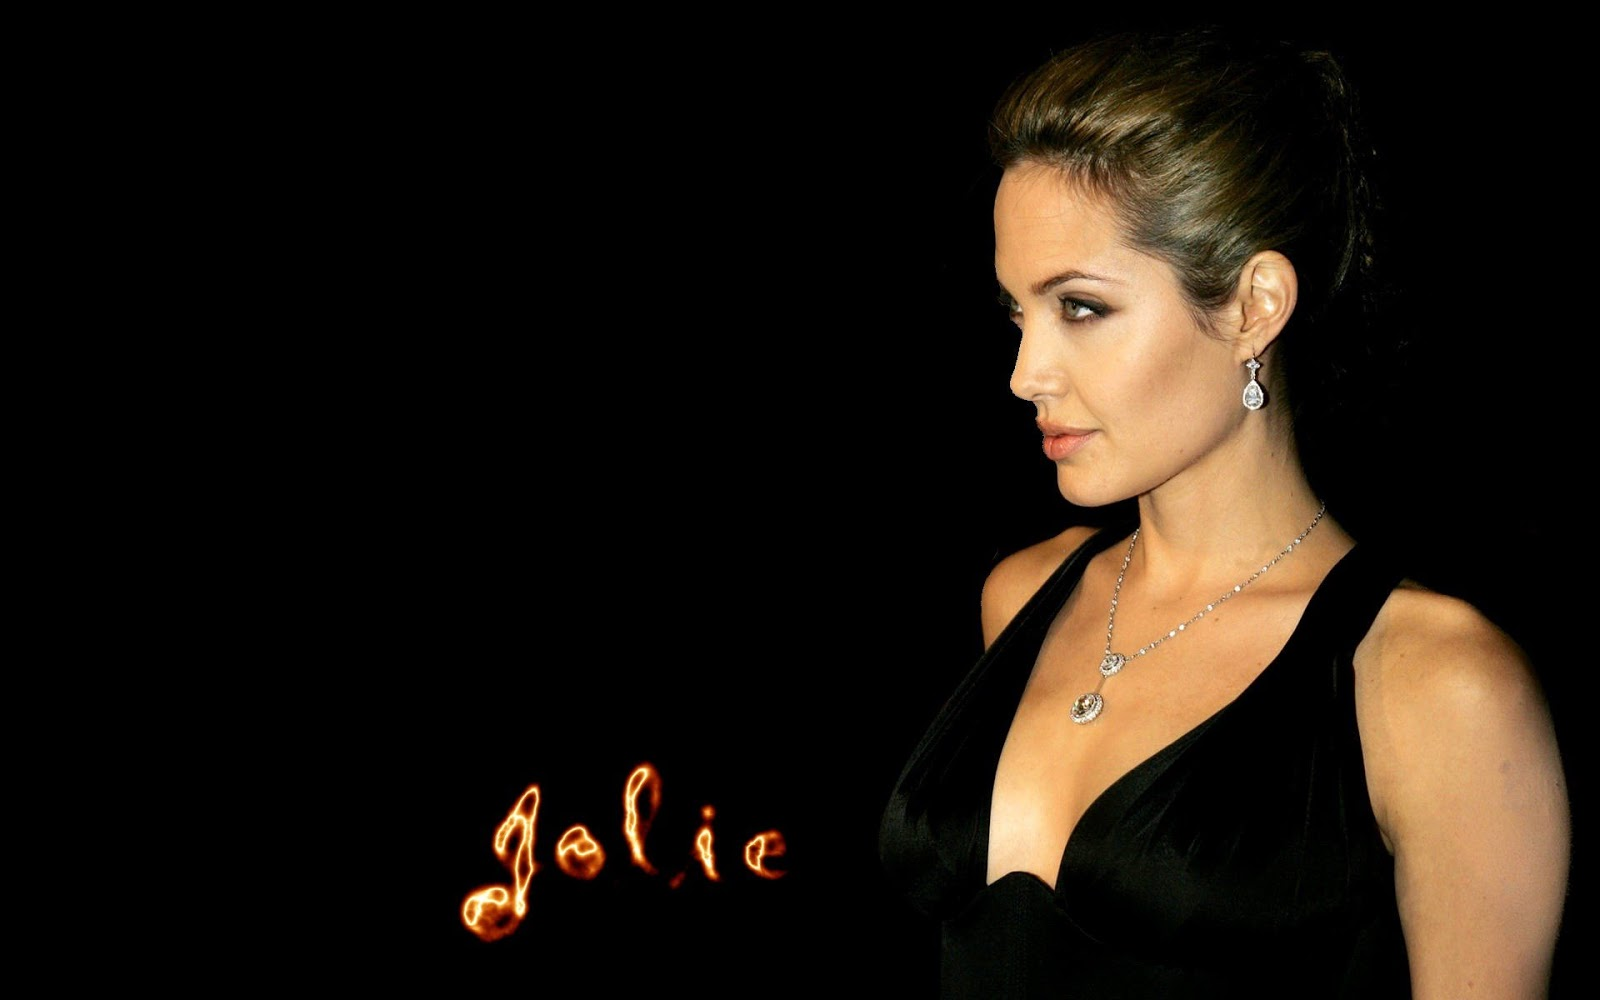 Hollywod Actress Angelina Jolie Hot Hd Wallpaper , She Is -2364